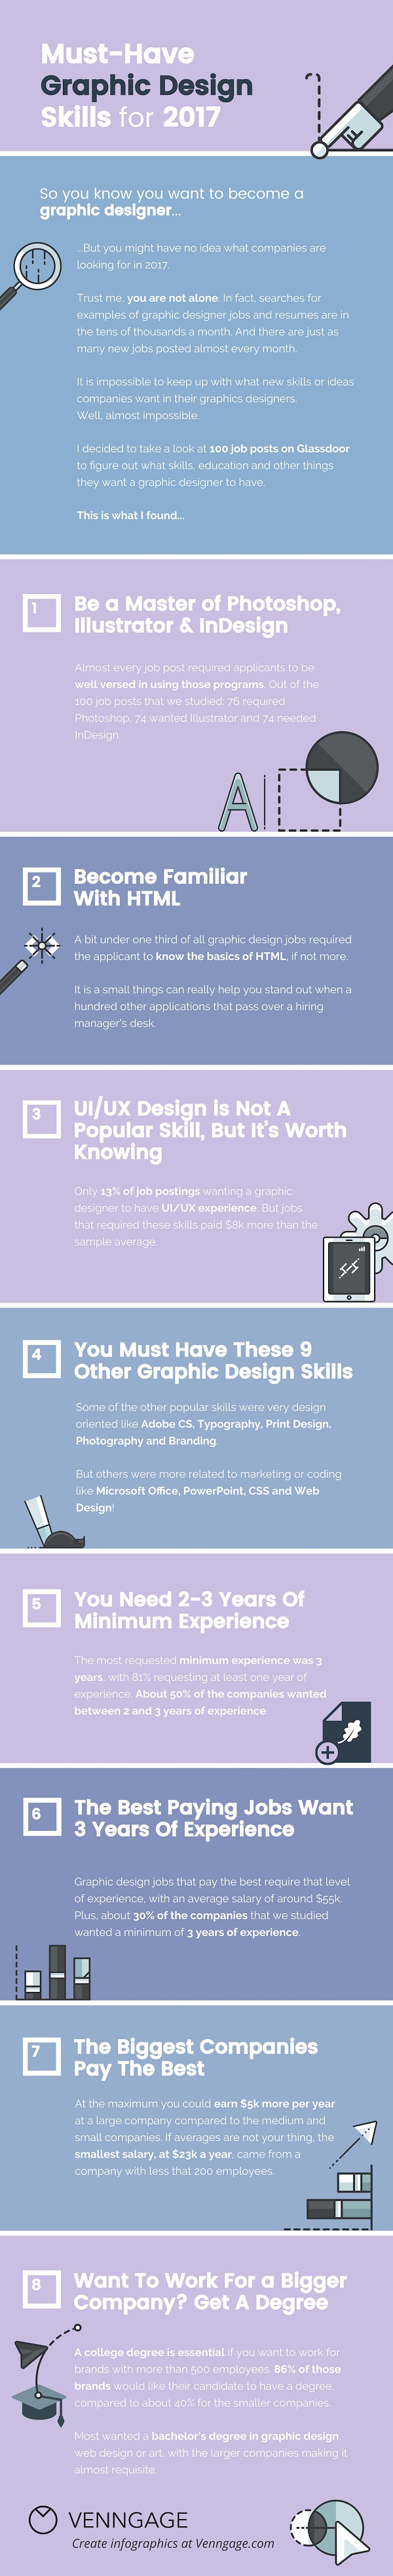 Infographic: Must-Have Graphic Design Skills For 2017